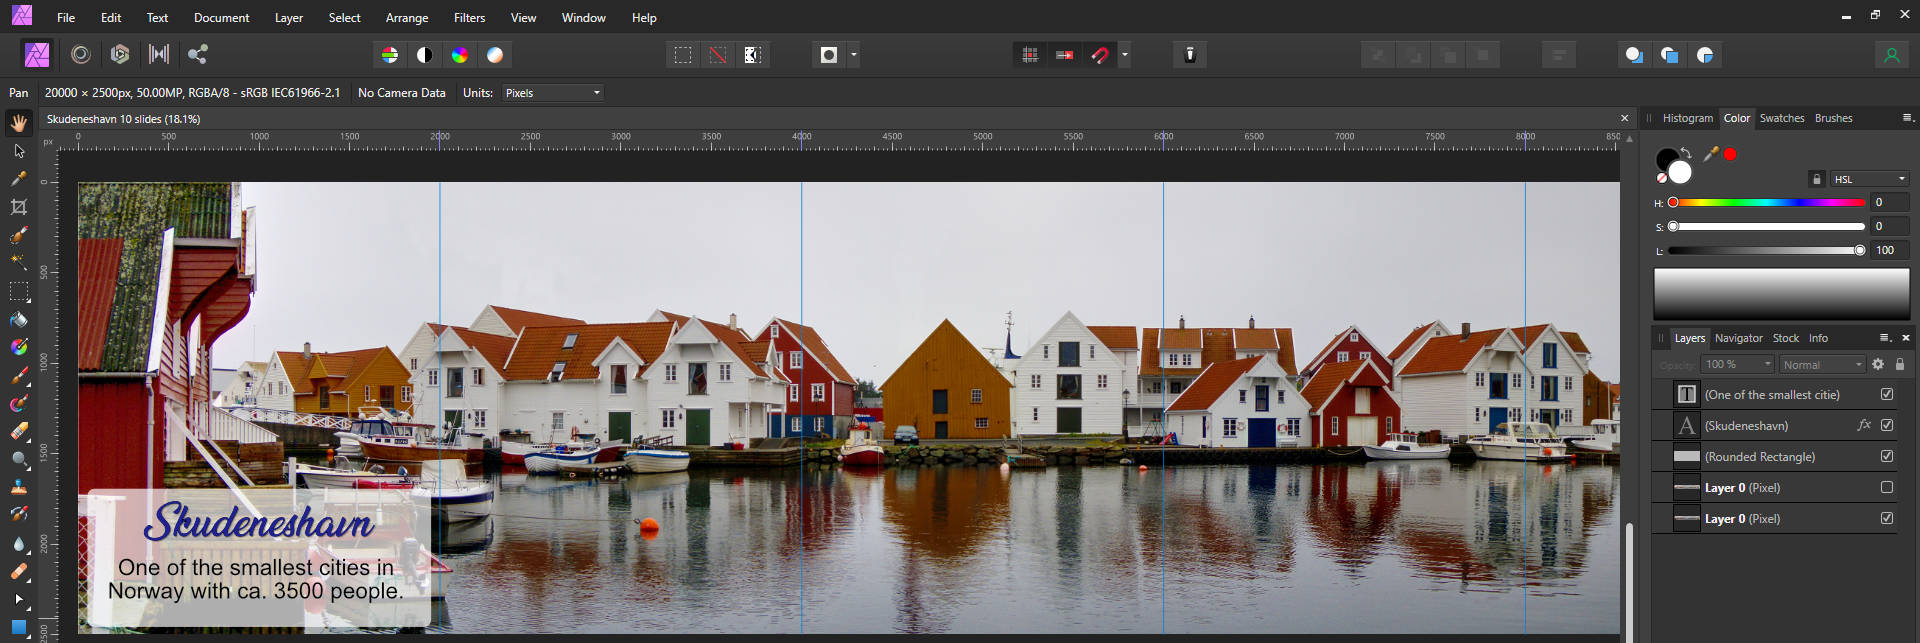 Free Instagram carousel templates for Affinity Photo 3